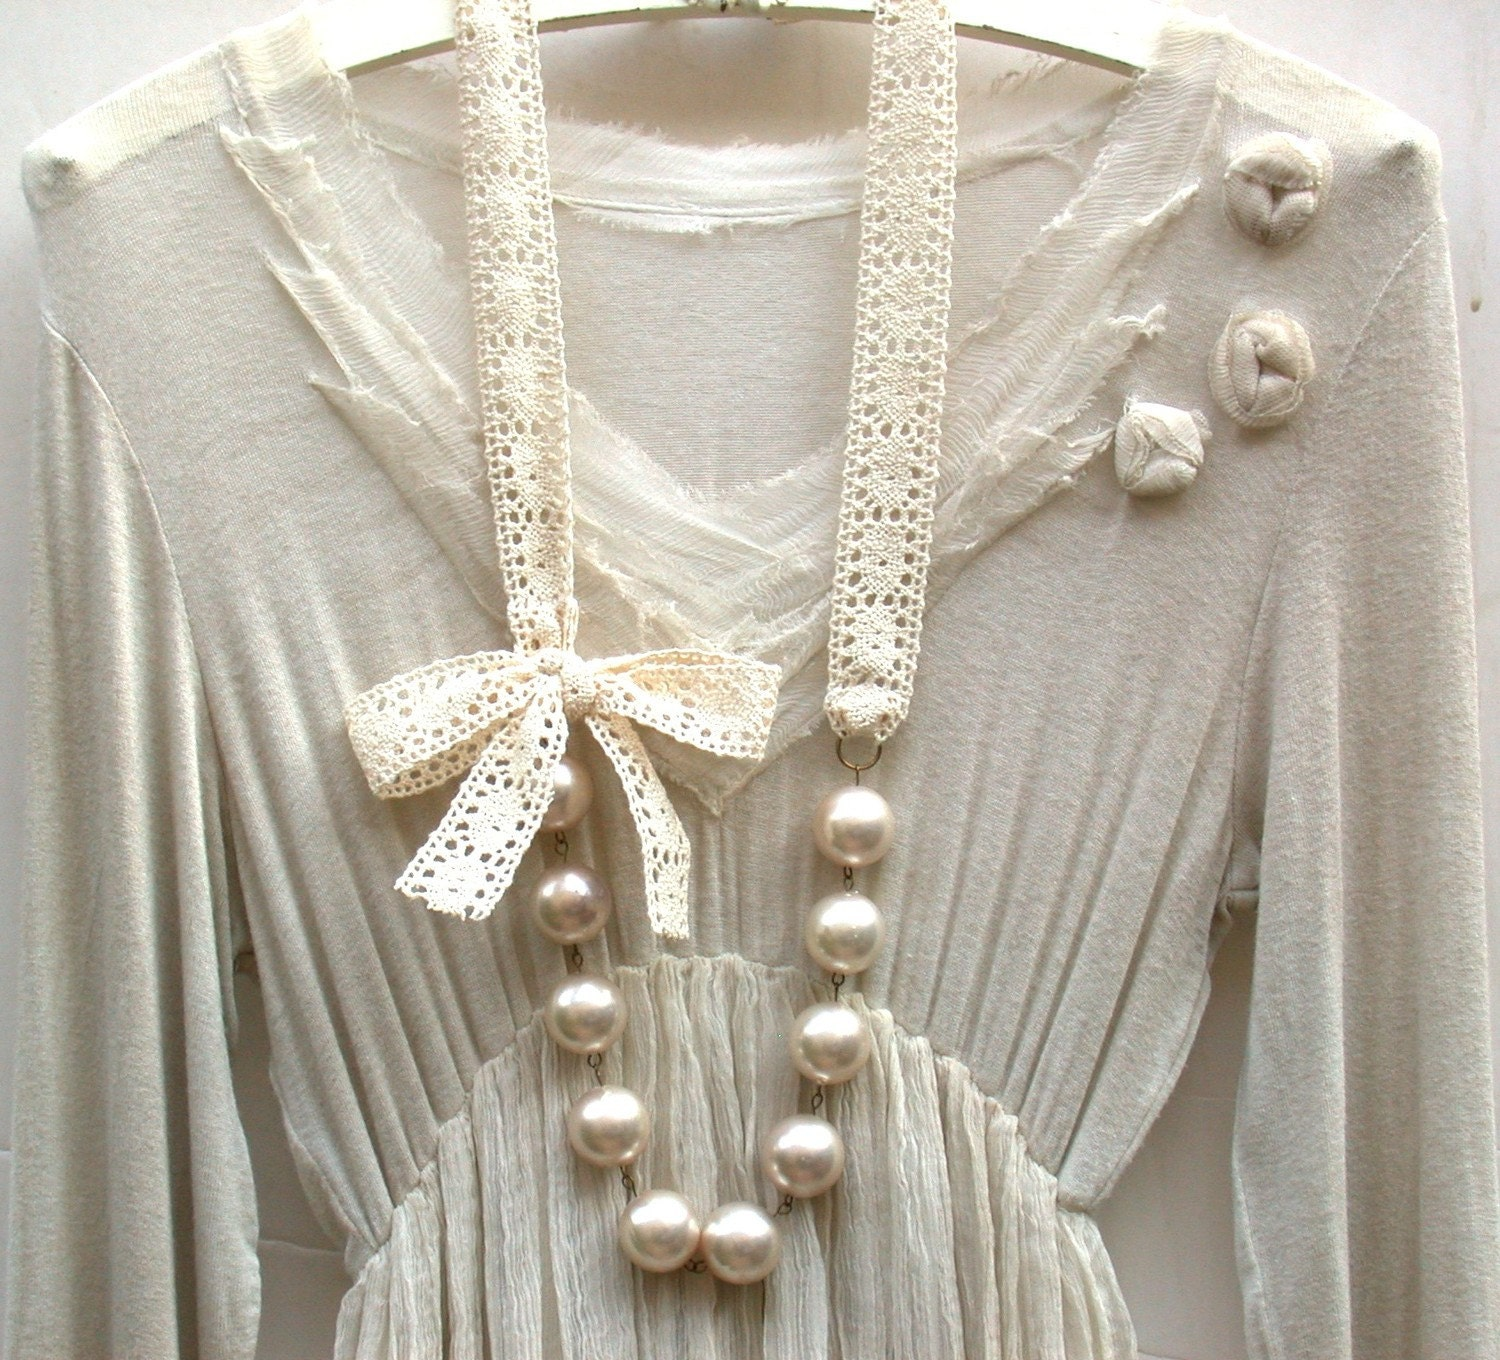 Carrie Bradshaw Inspired Giant Vintage Cream Pearls Long Necklace In Elegant Beige Crochet Cotton Lace Ribbon - roomofyourown